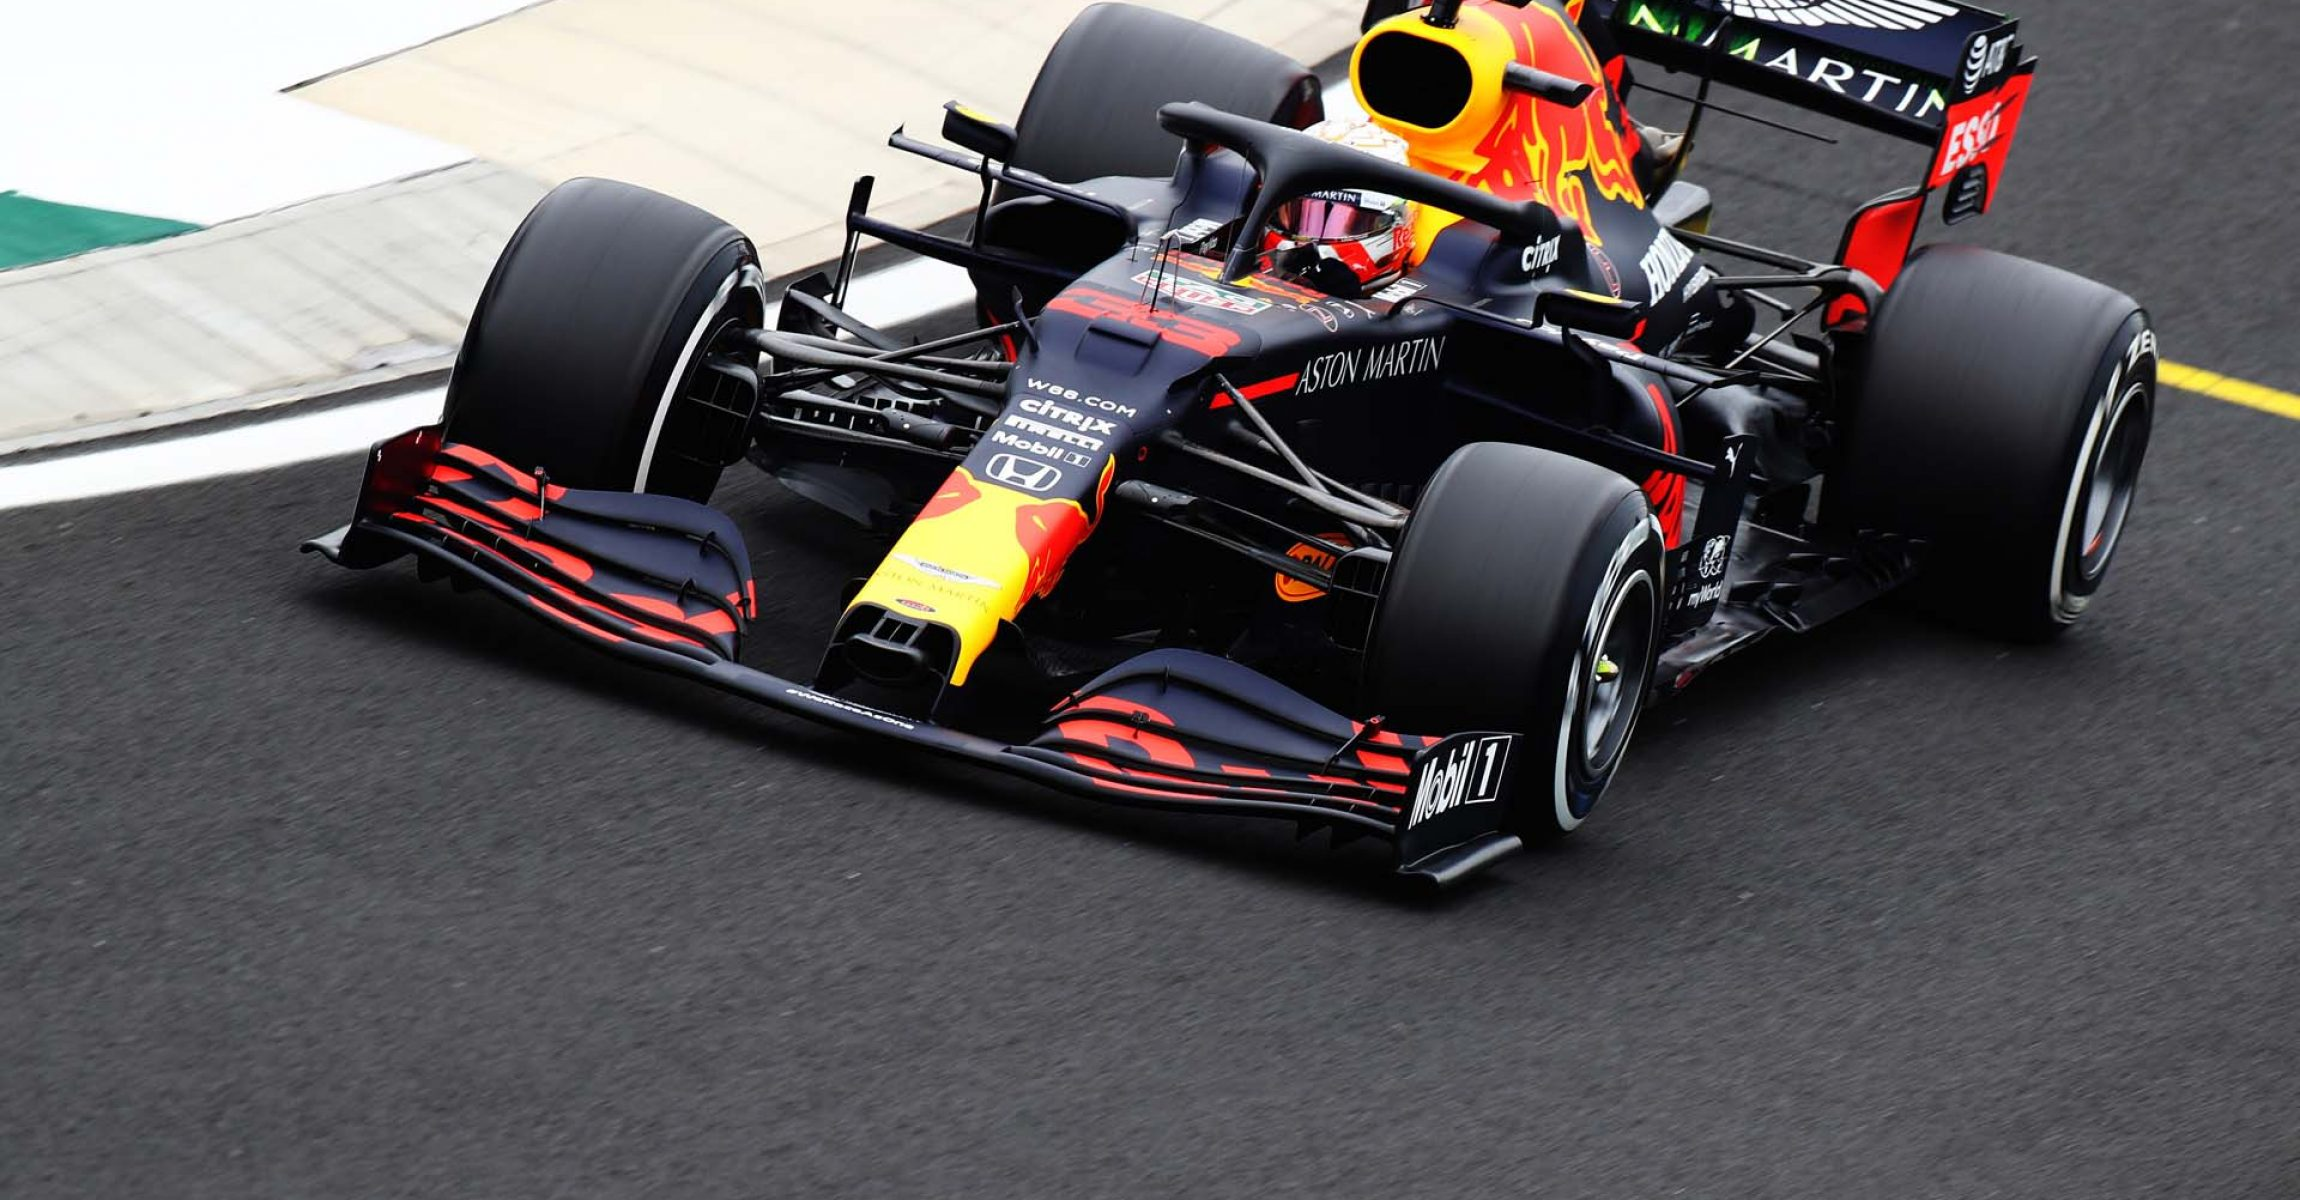 BUDAPEST, HUNGARY - JULY 17: Max Verstappen of the Netherlands driving the (33) Aston Martin Red Bull Racing RB16 on track during practice for the F1 Grand Prix of Hungary at Hungaroring on July 17, 2020 in Budapest, Hungary. (Photo by Mark Thompson/Getty Images,) // Getty Images / Red Bull Content Pool // AP-24NG3PKVS2111 // Usage for editorial use only //